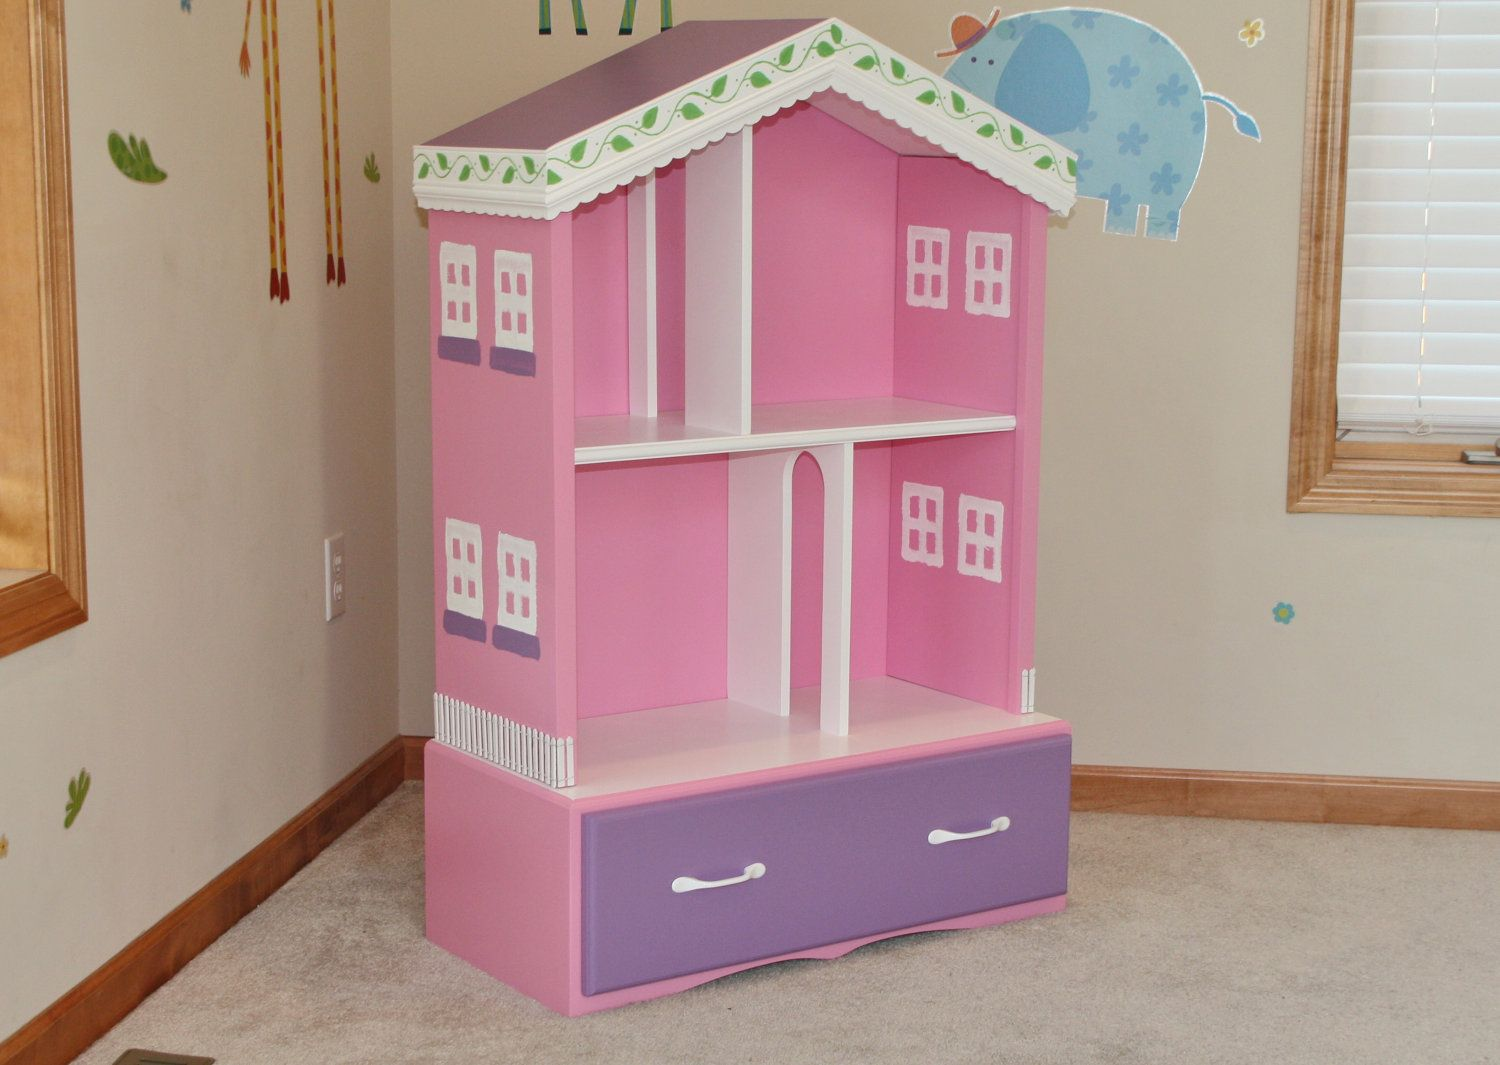 Barbie House Design Doll Houses Barbie Doll House By Handcraftedbyneil On